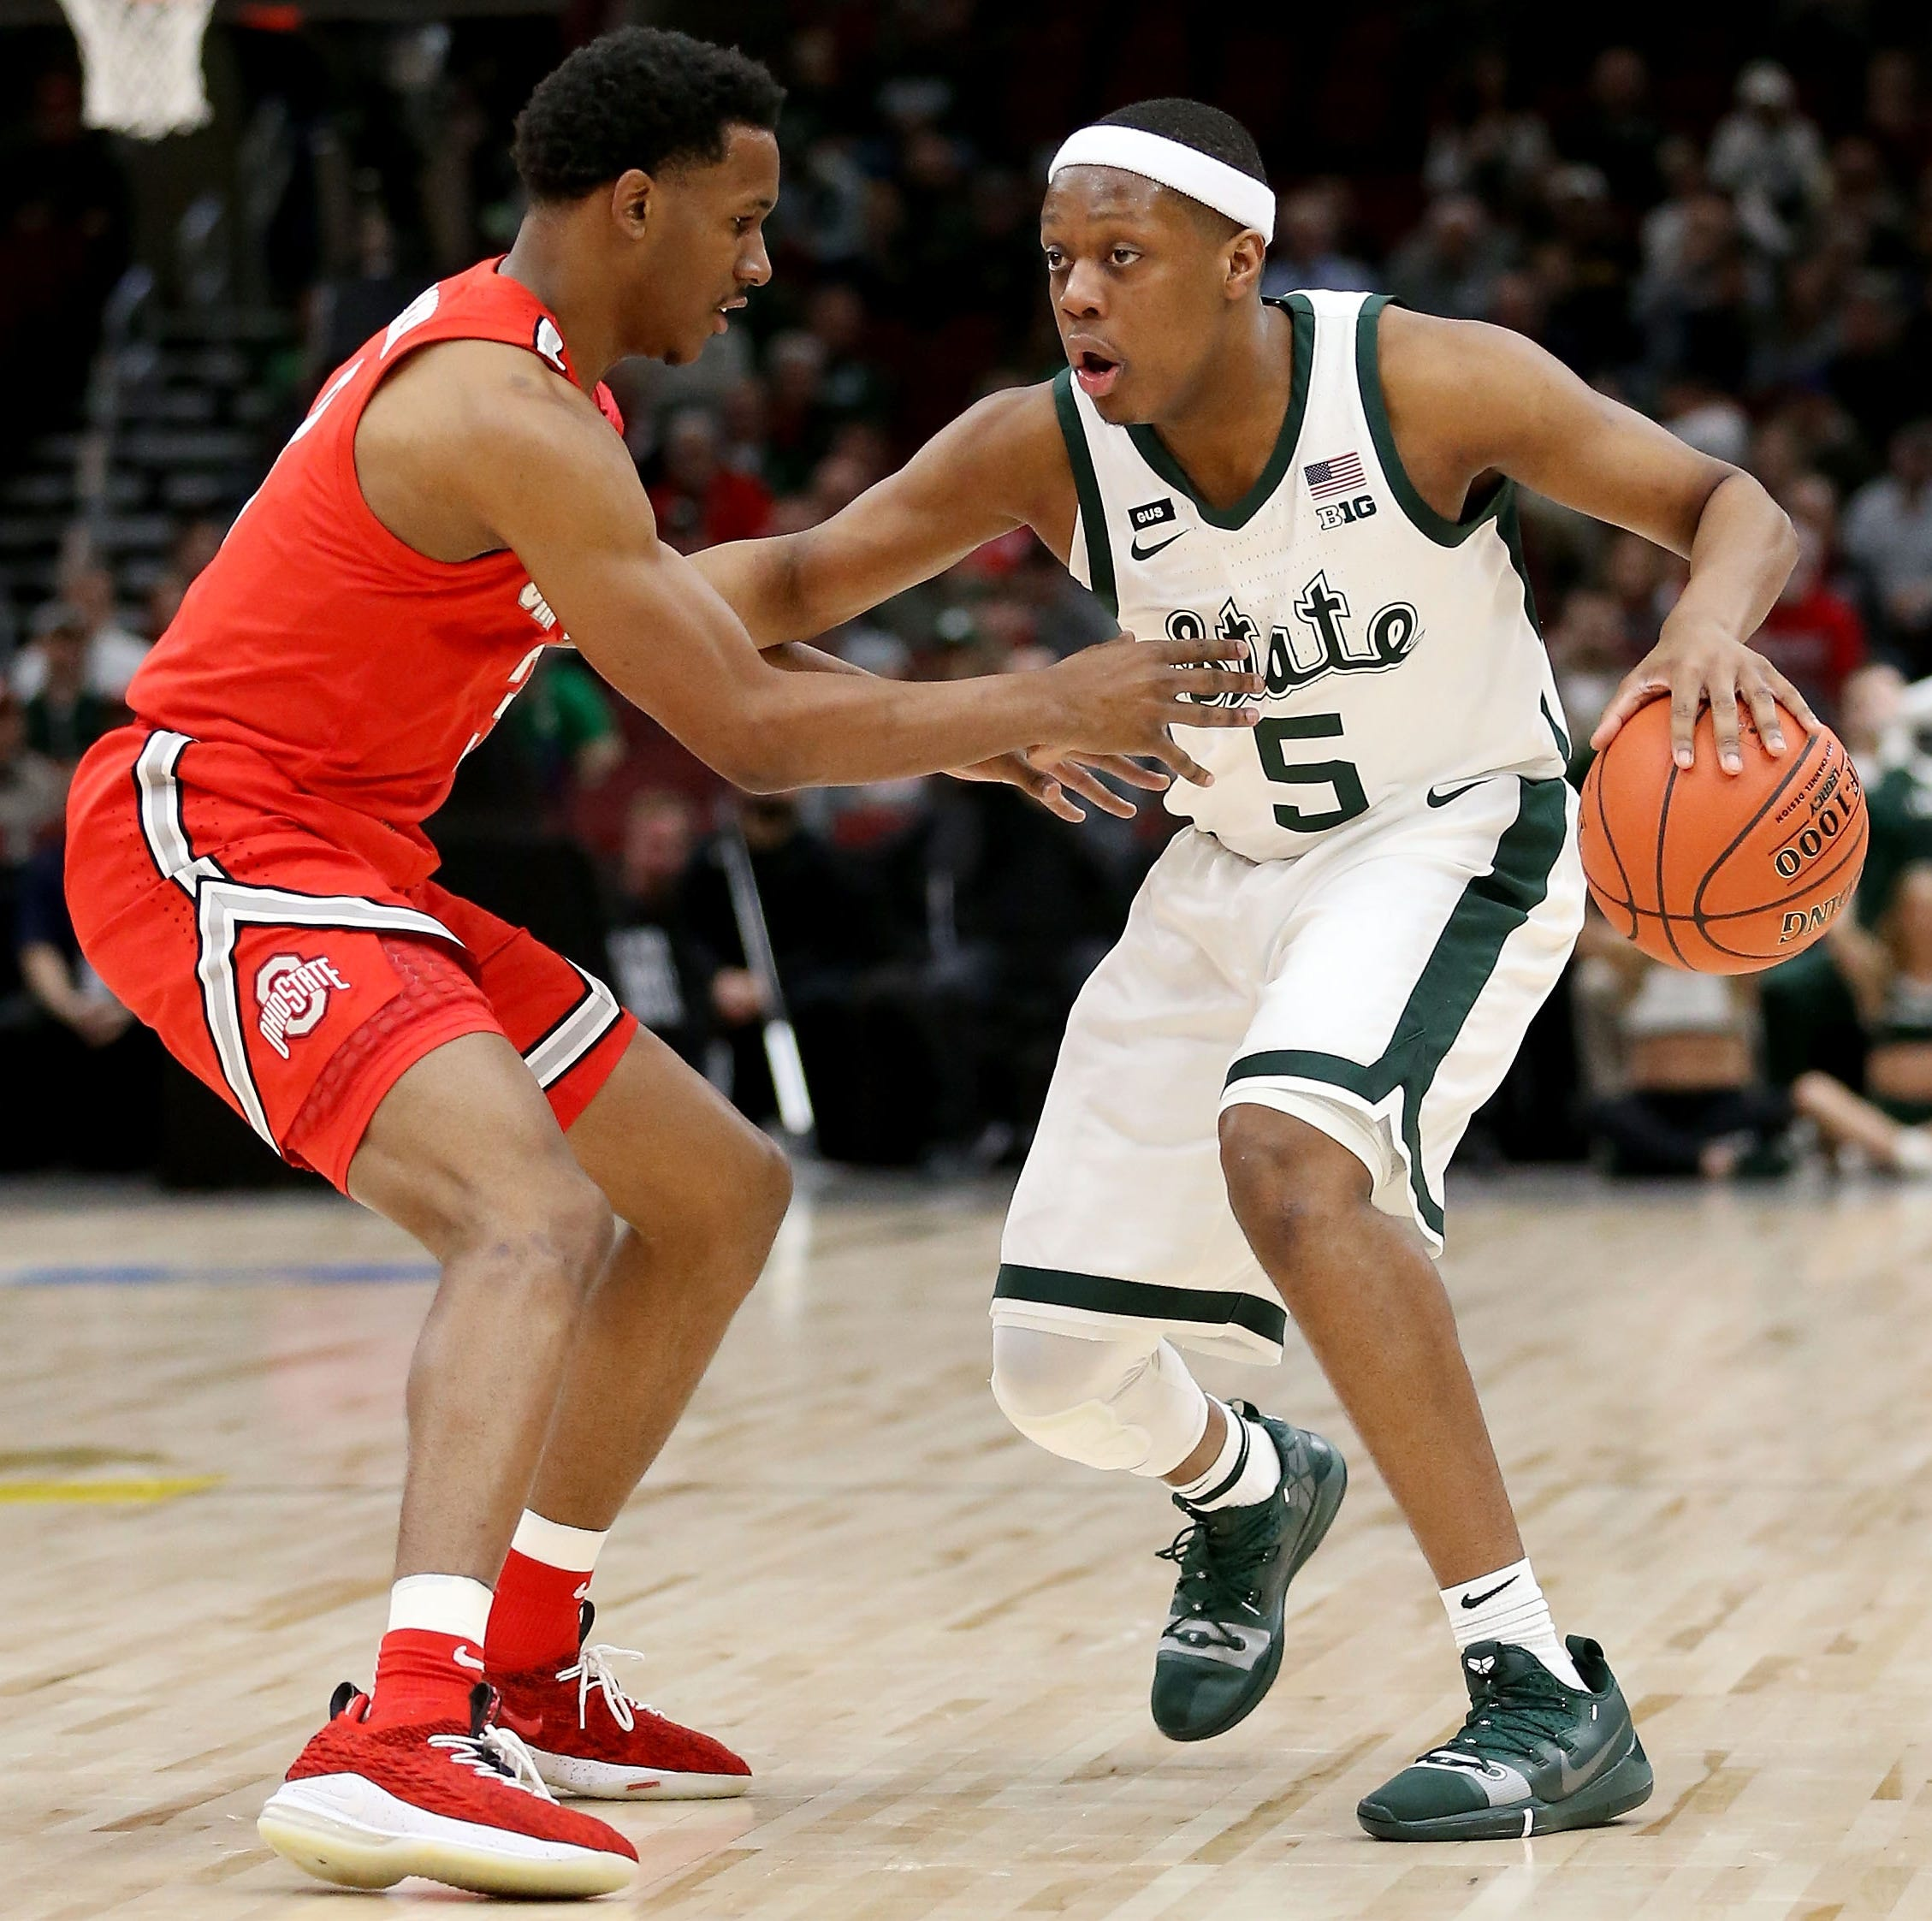 Tom Izzo: Michigan State's Cassius Winston played injured vs. Ohio State